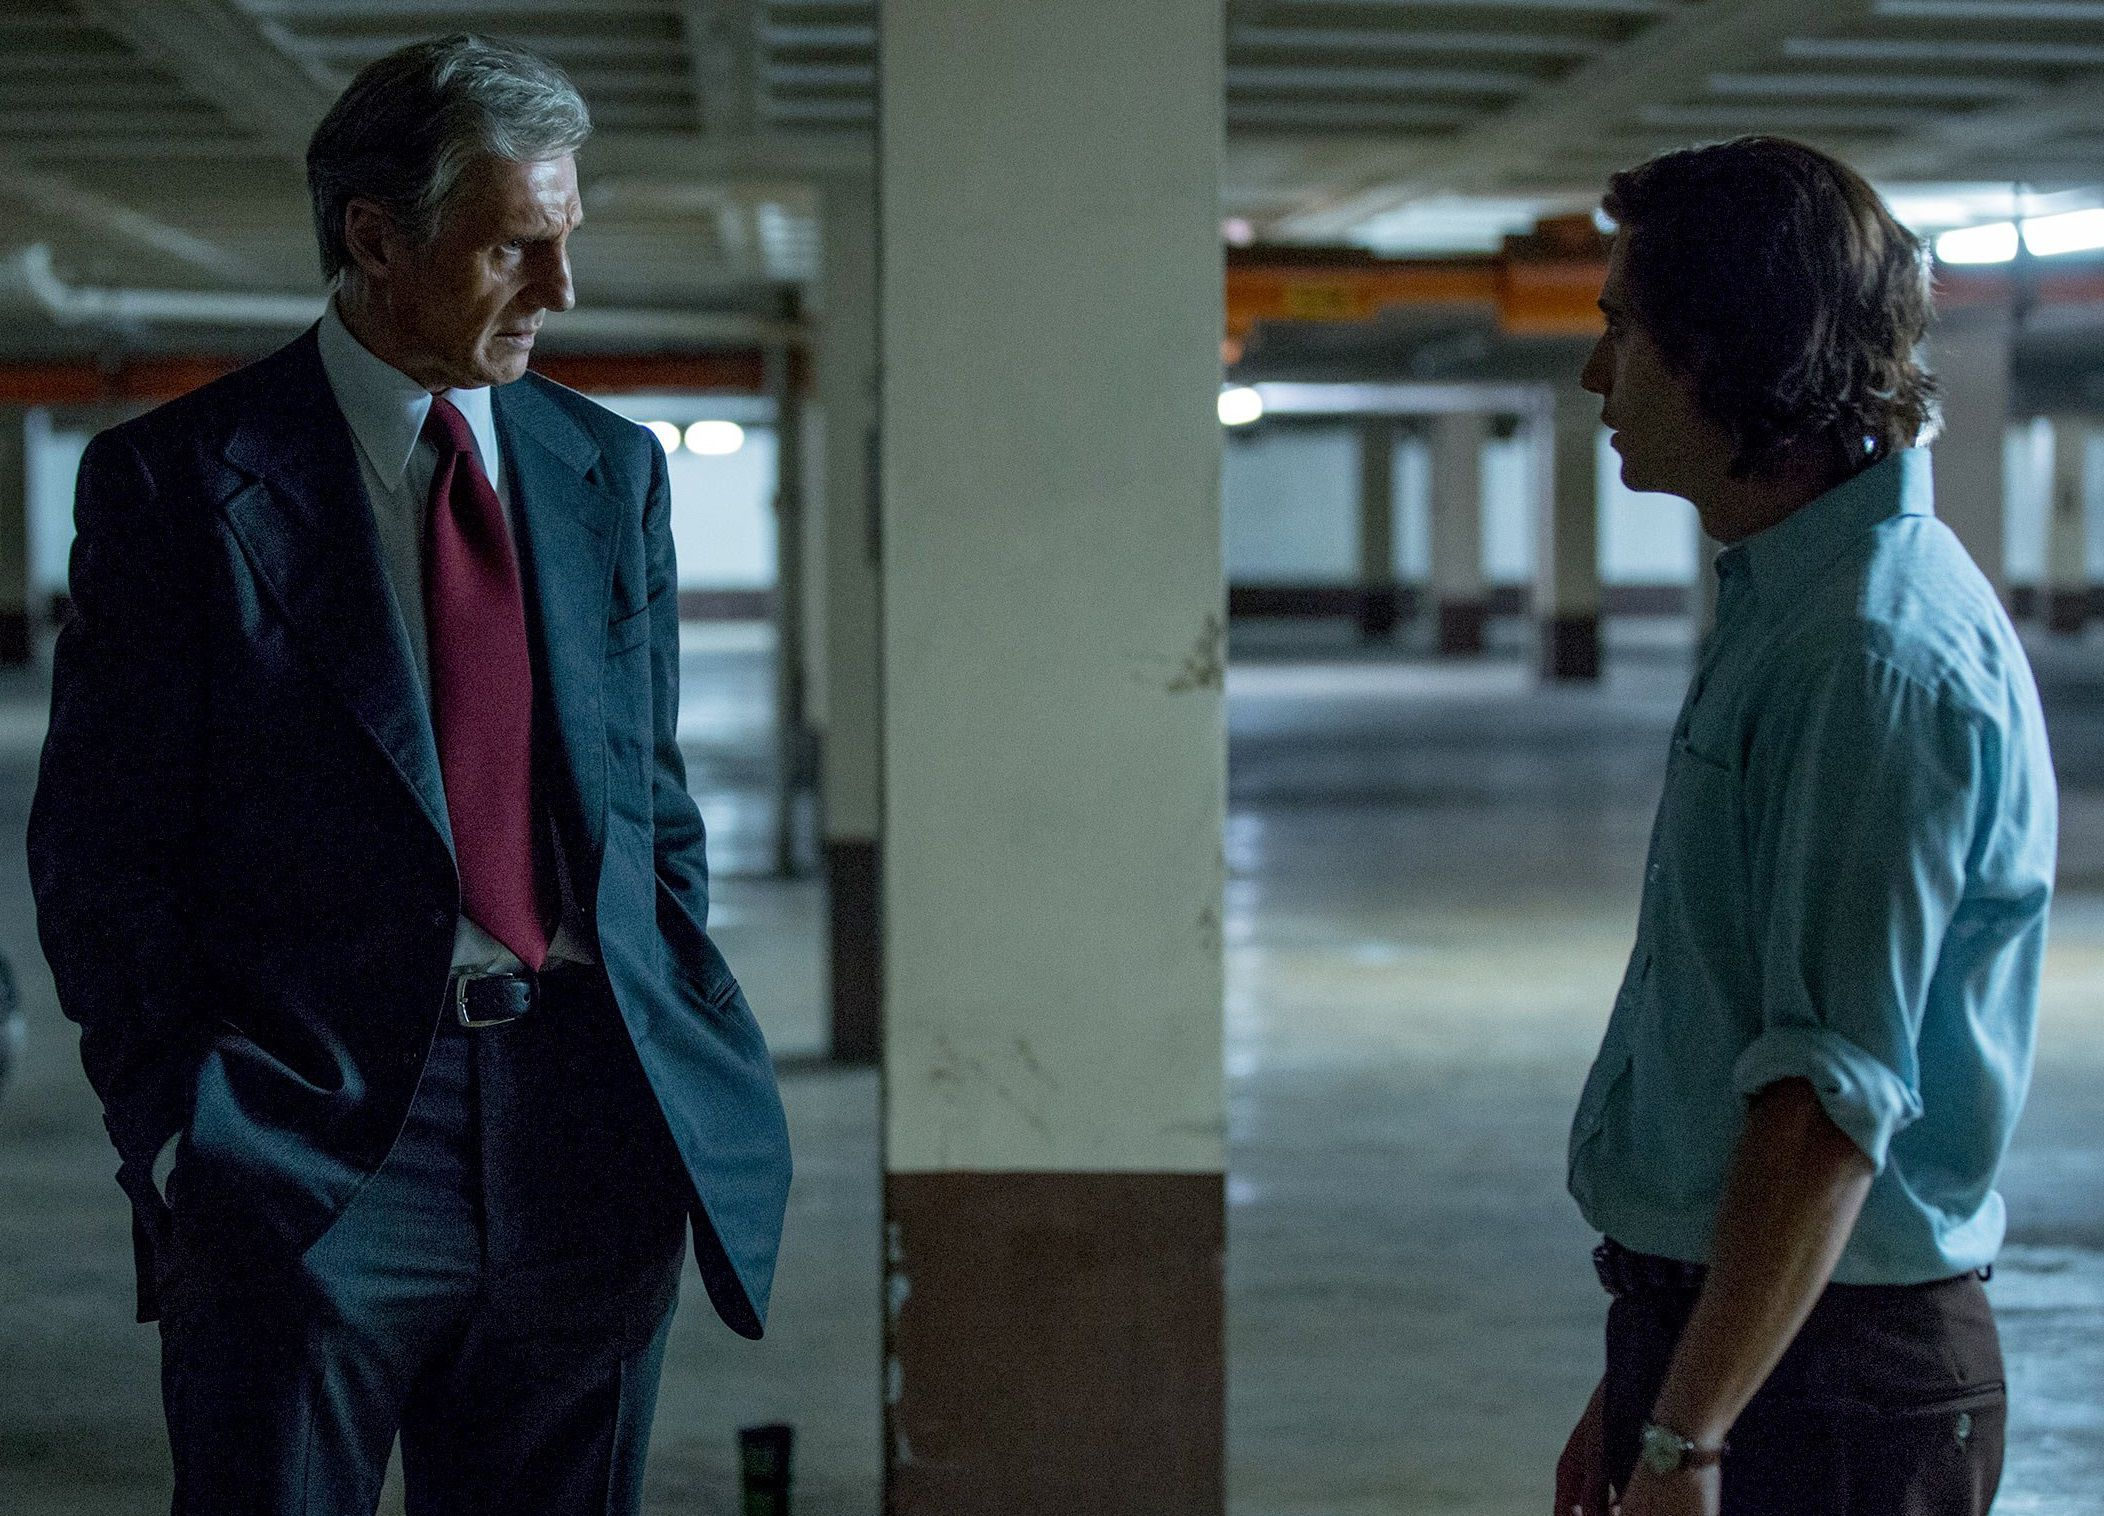 Mark Felt - film scene - Liam Neeson - watergate